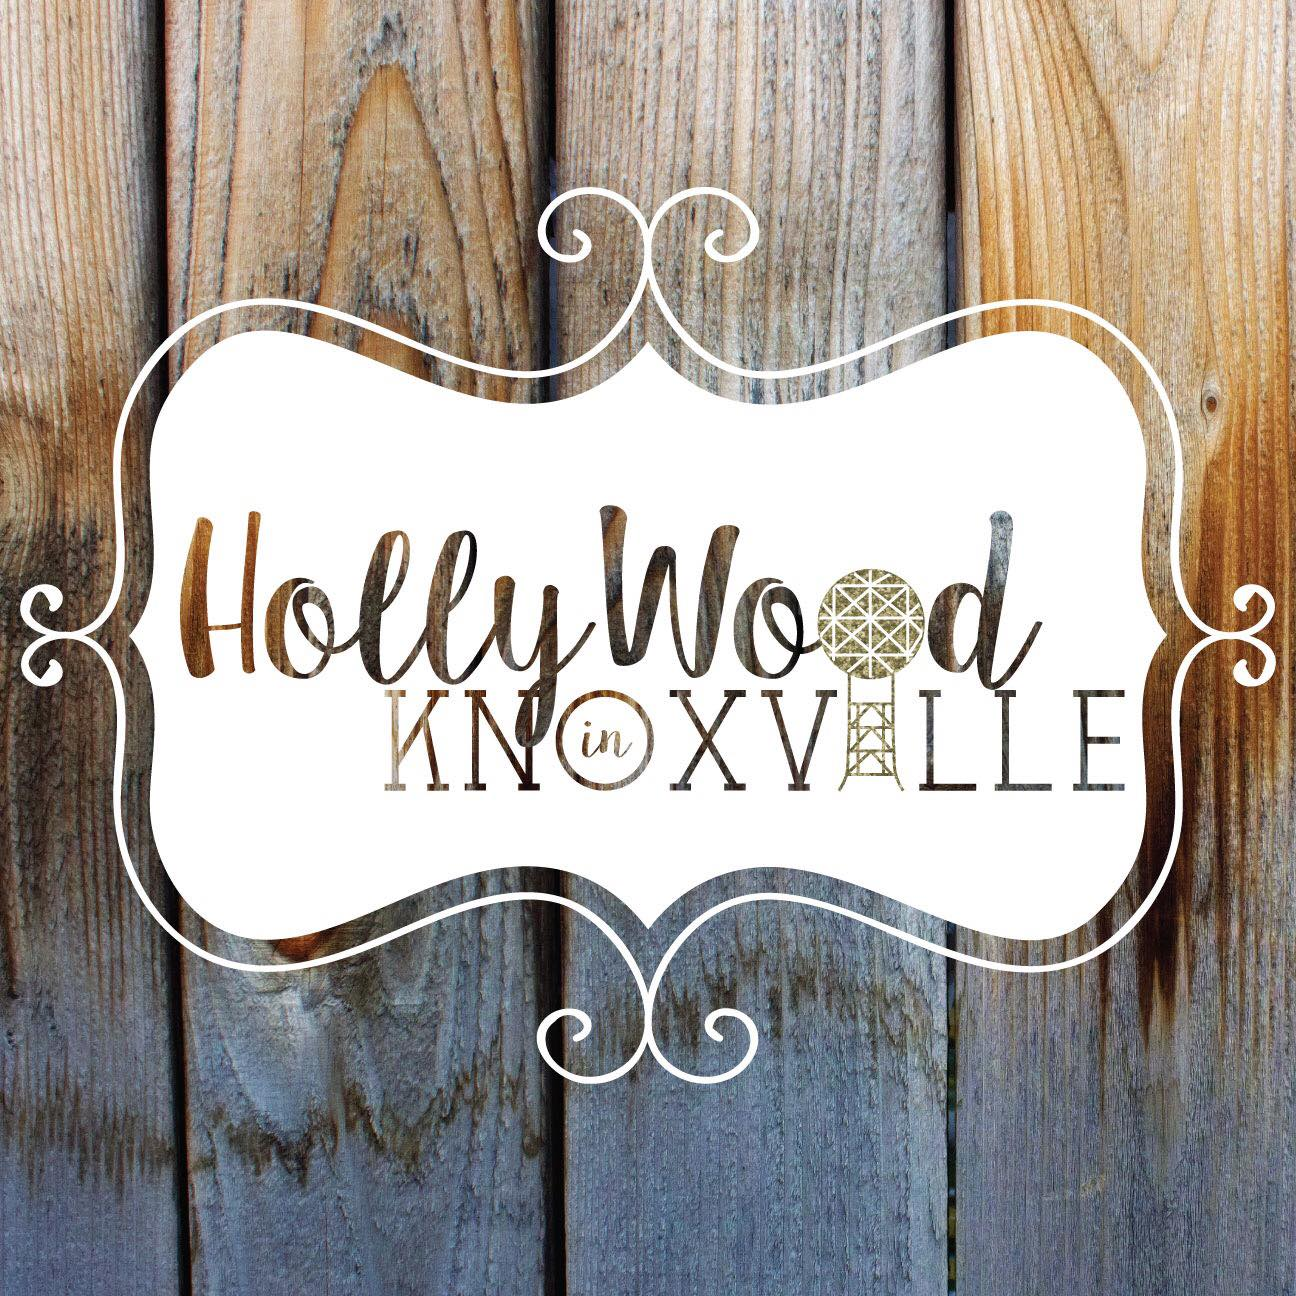 Hollywood in Knoxville logo.jpg